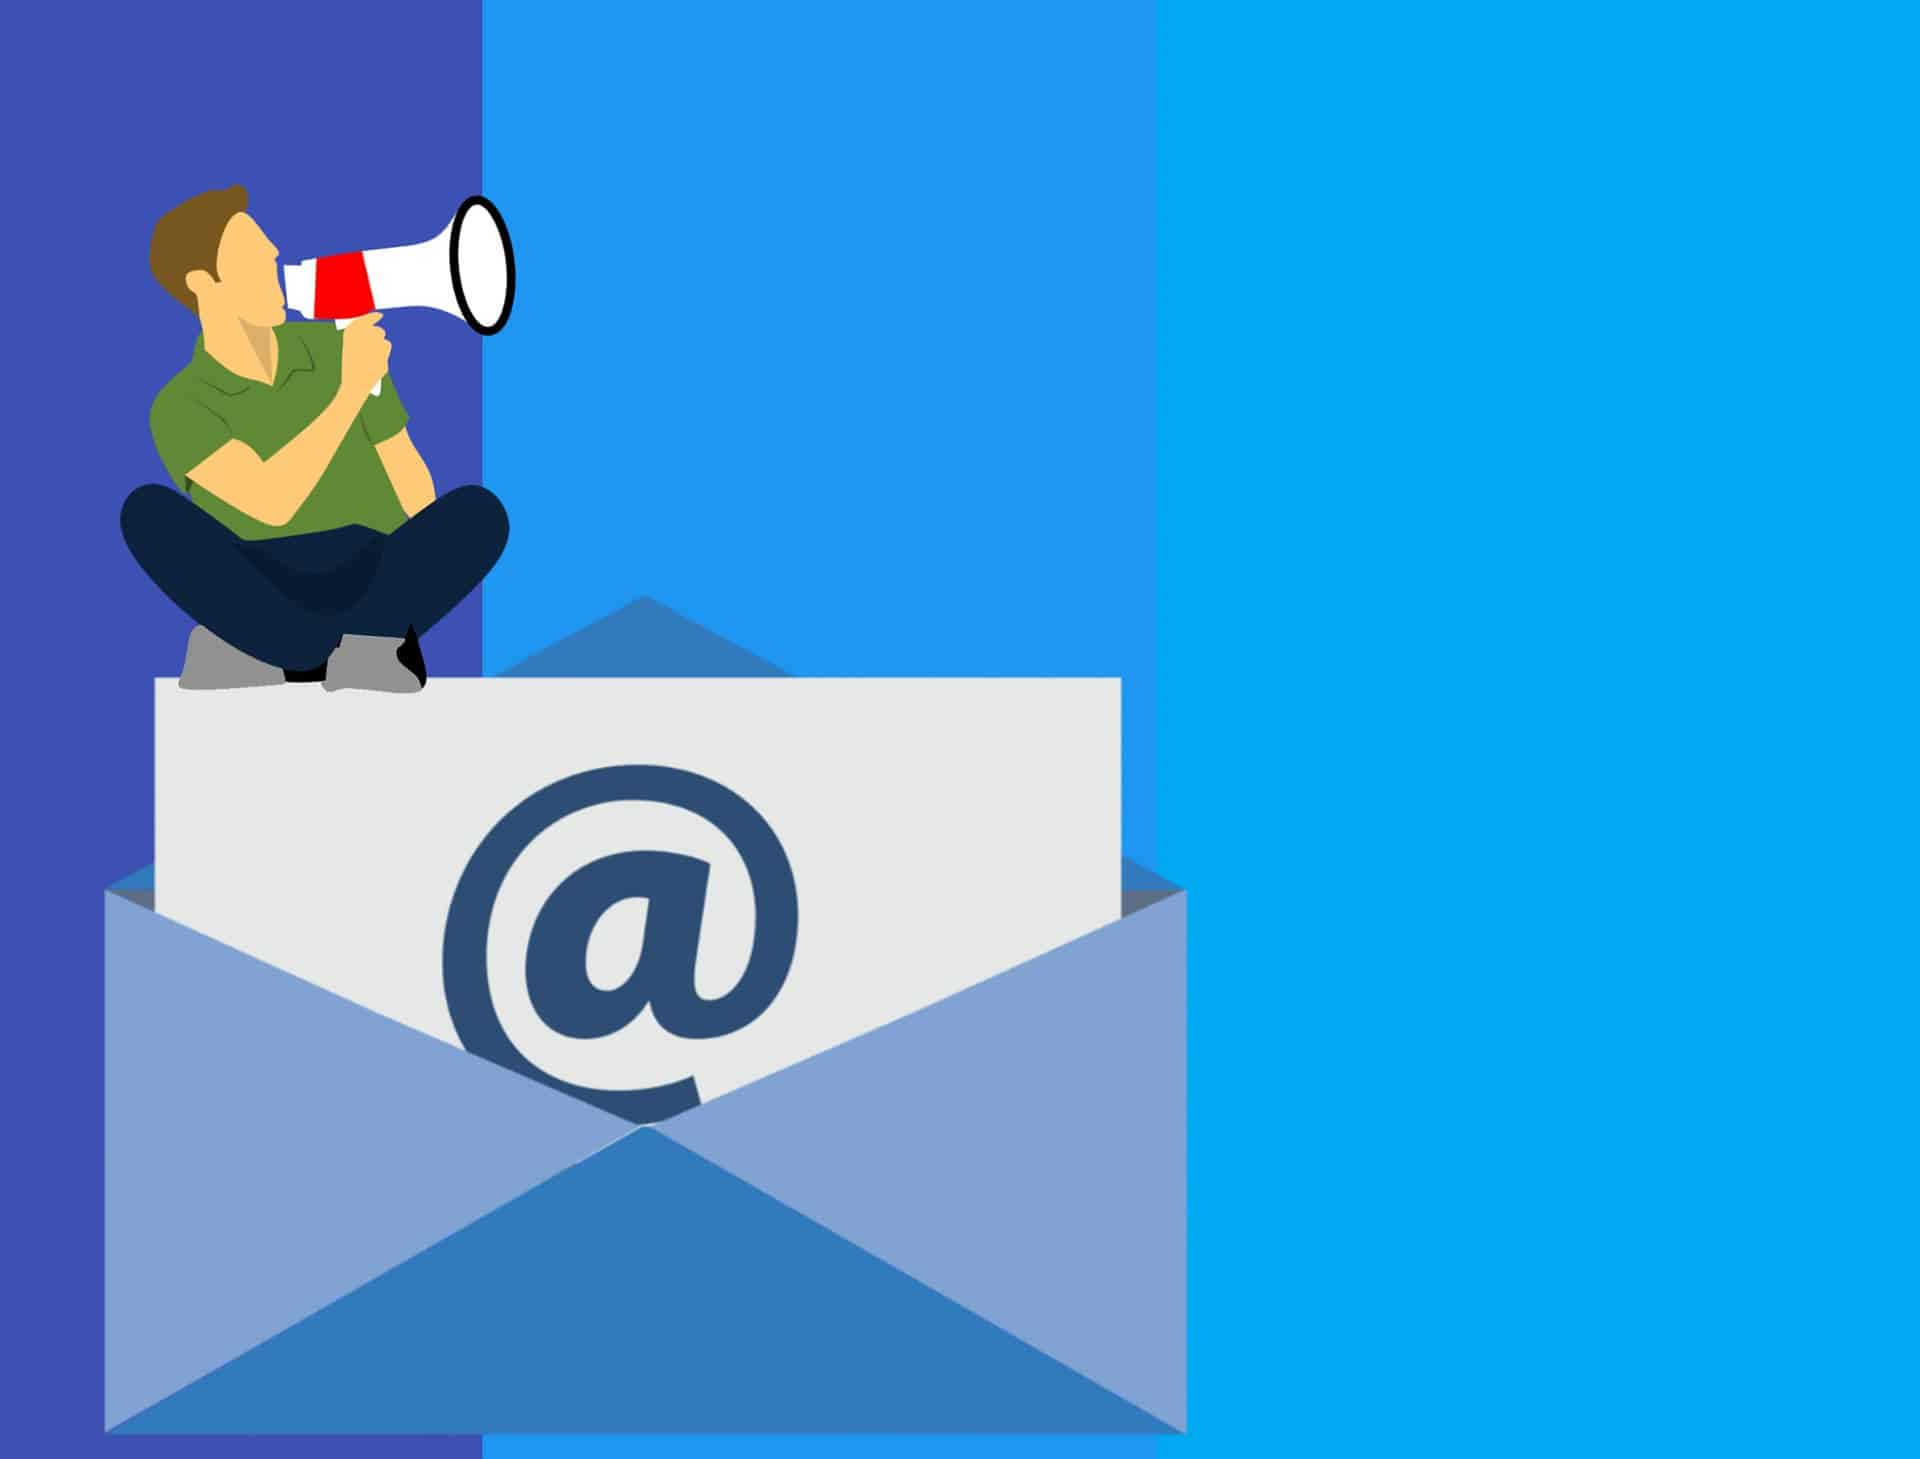 Email as Announcement, via Pixabay